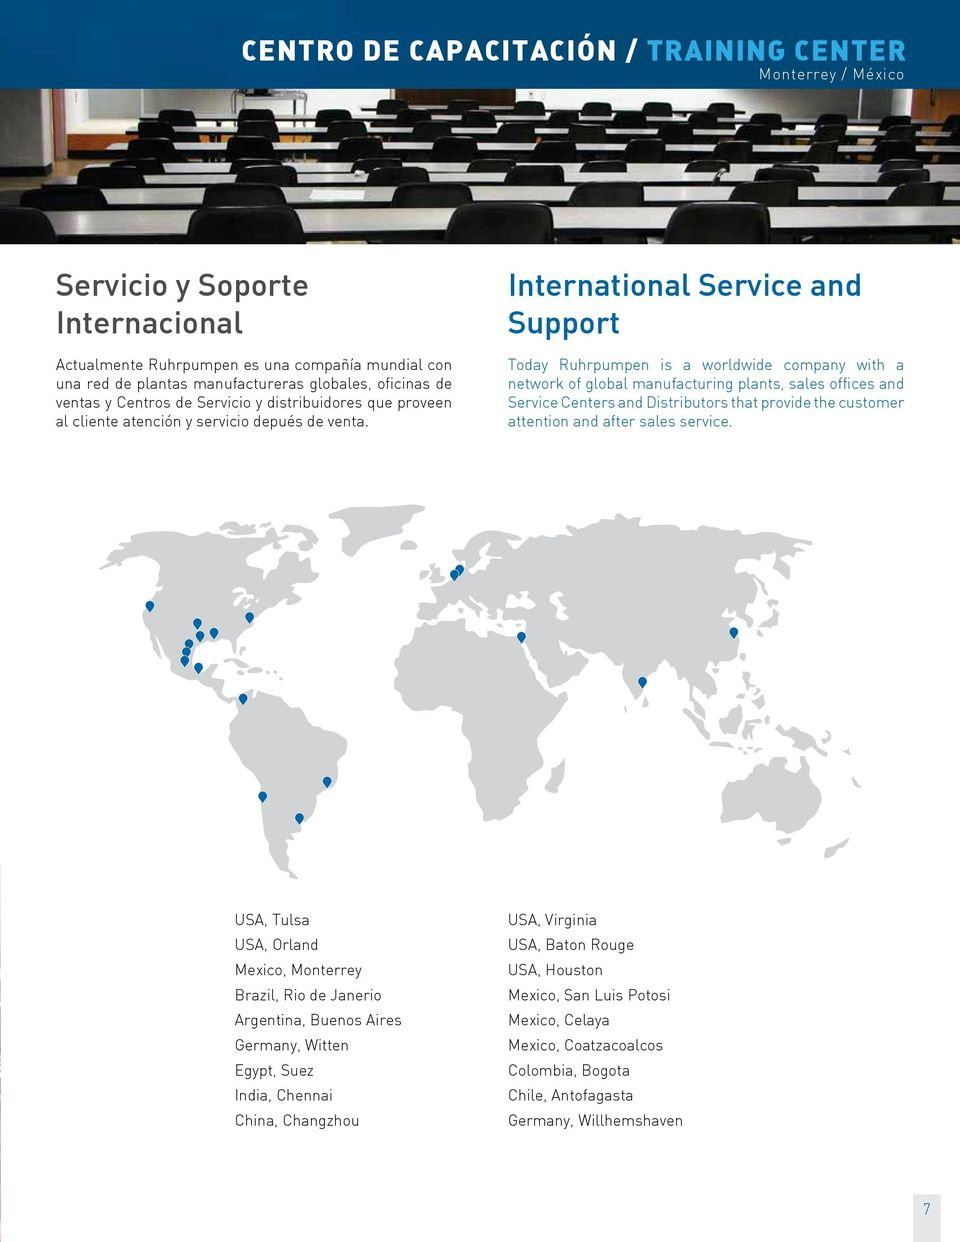 International Service and Support Today Ruhrpumpen is a worldwide company with a network of global manufacturing plants, sales offices and Service Centers and Distributors that provide the customer